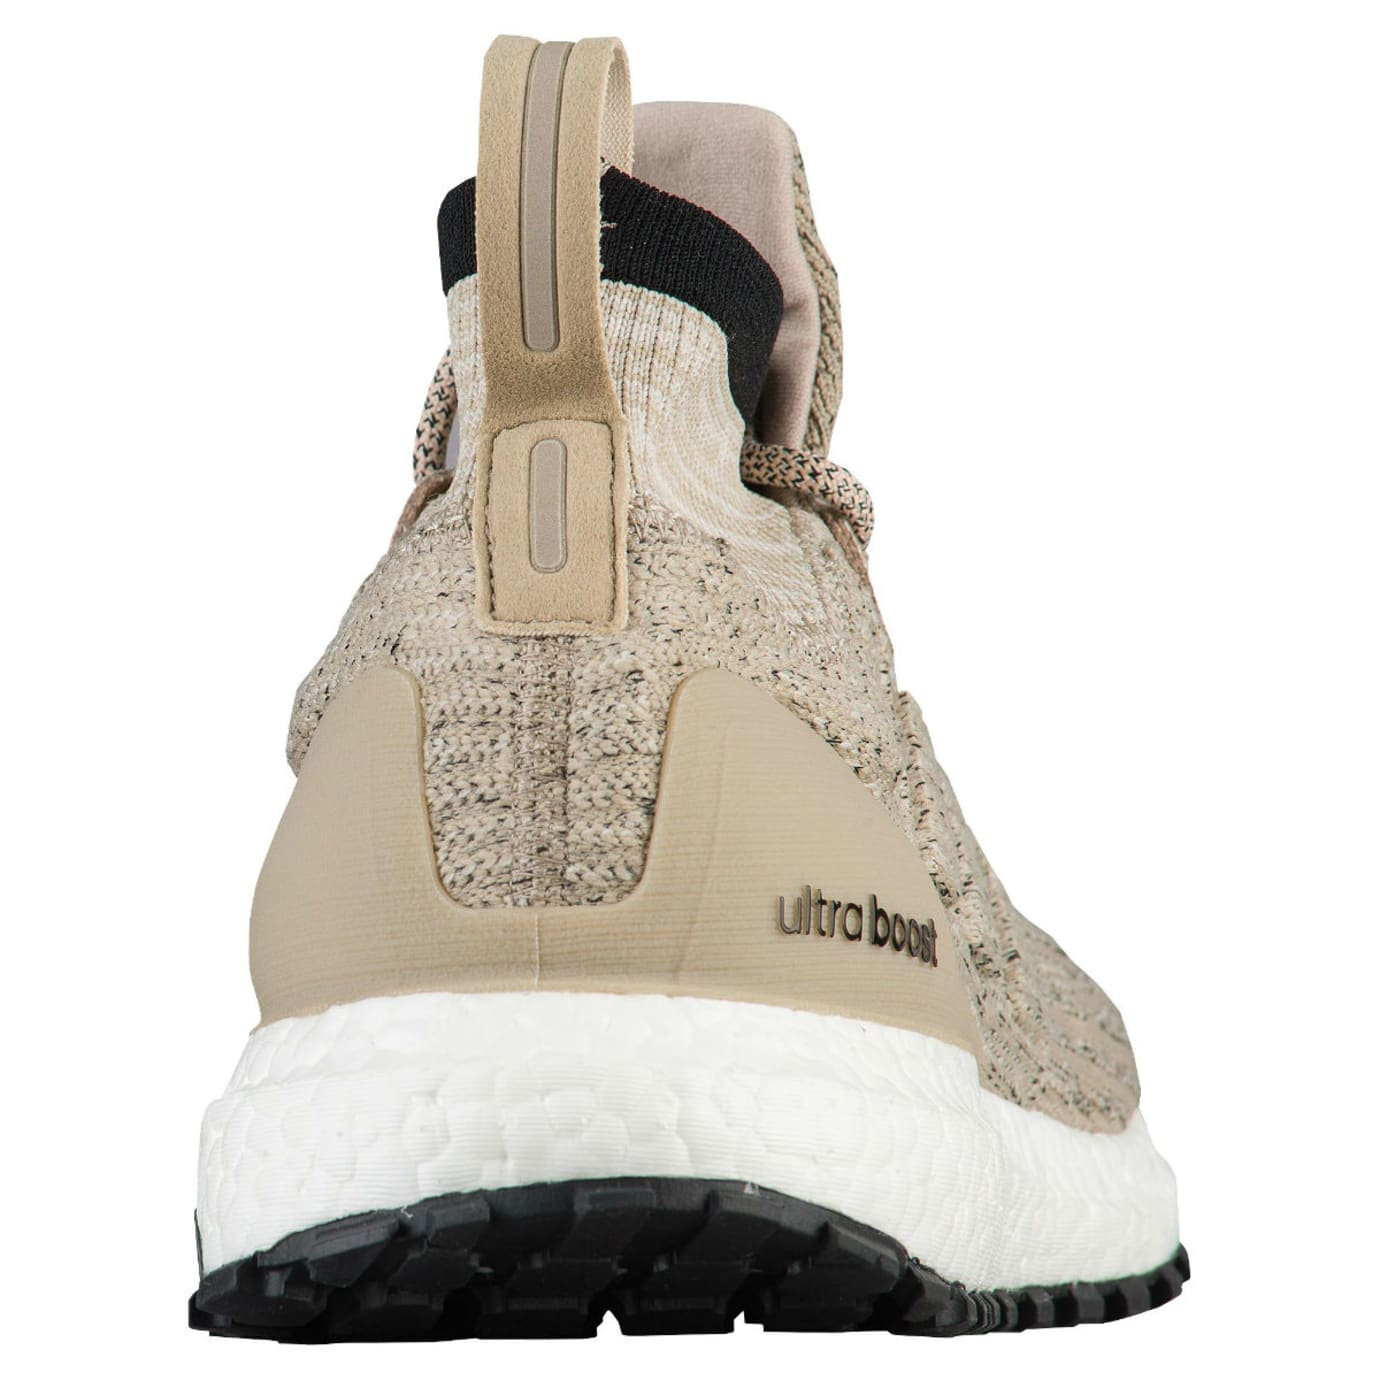 Adidas Ultra Boost ATR Mid Trace Khaki Release Date Heel CG3001 bf5365076